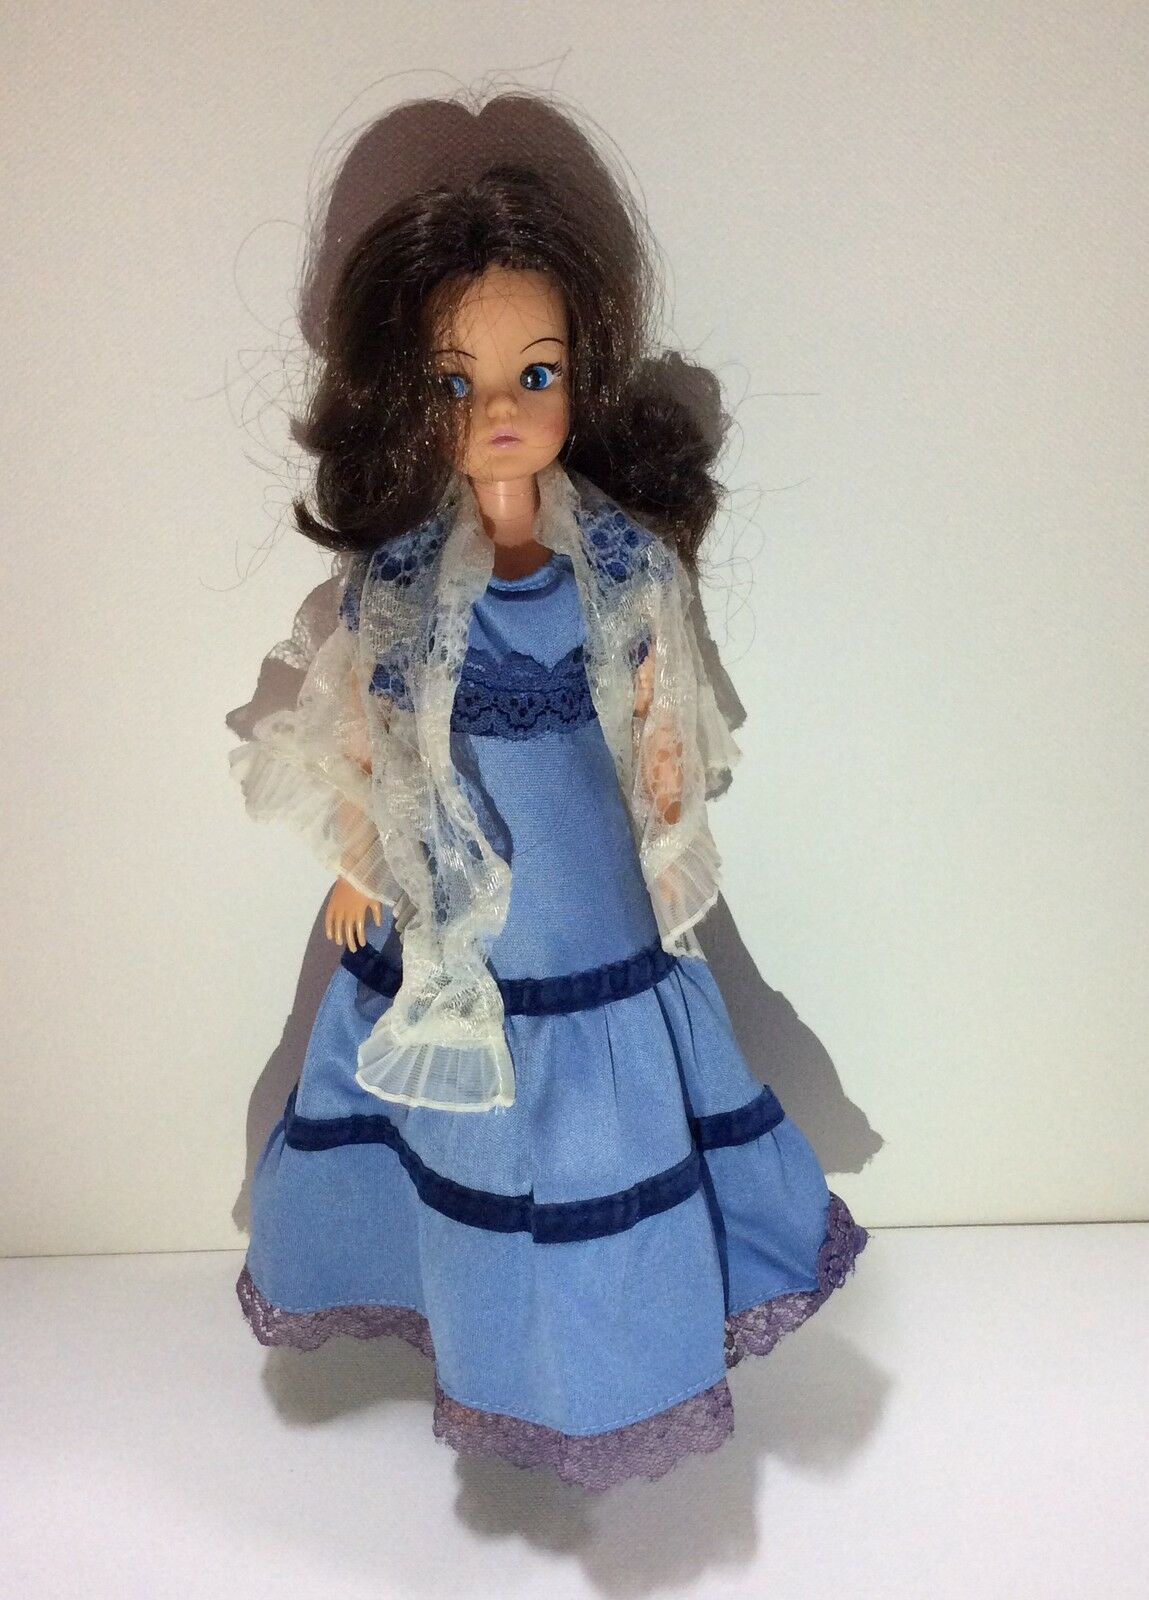 Vintage Sindy doll 1980's - Gypsy lady